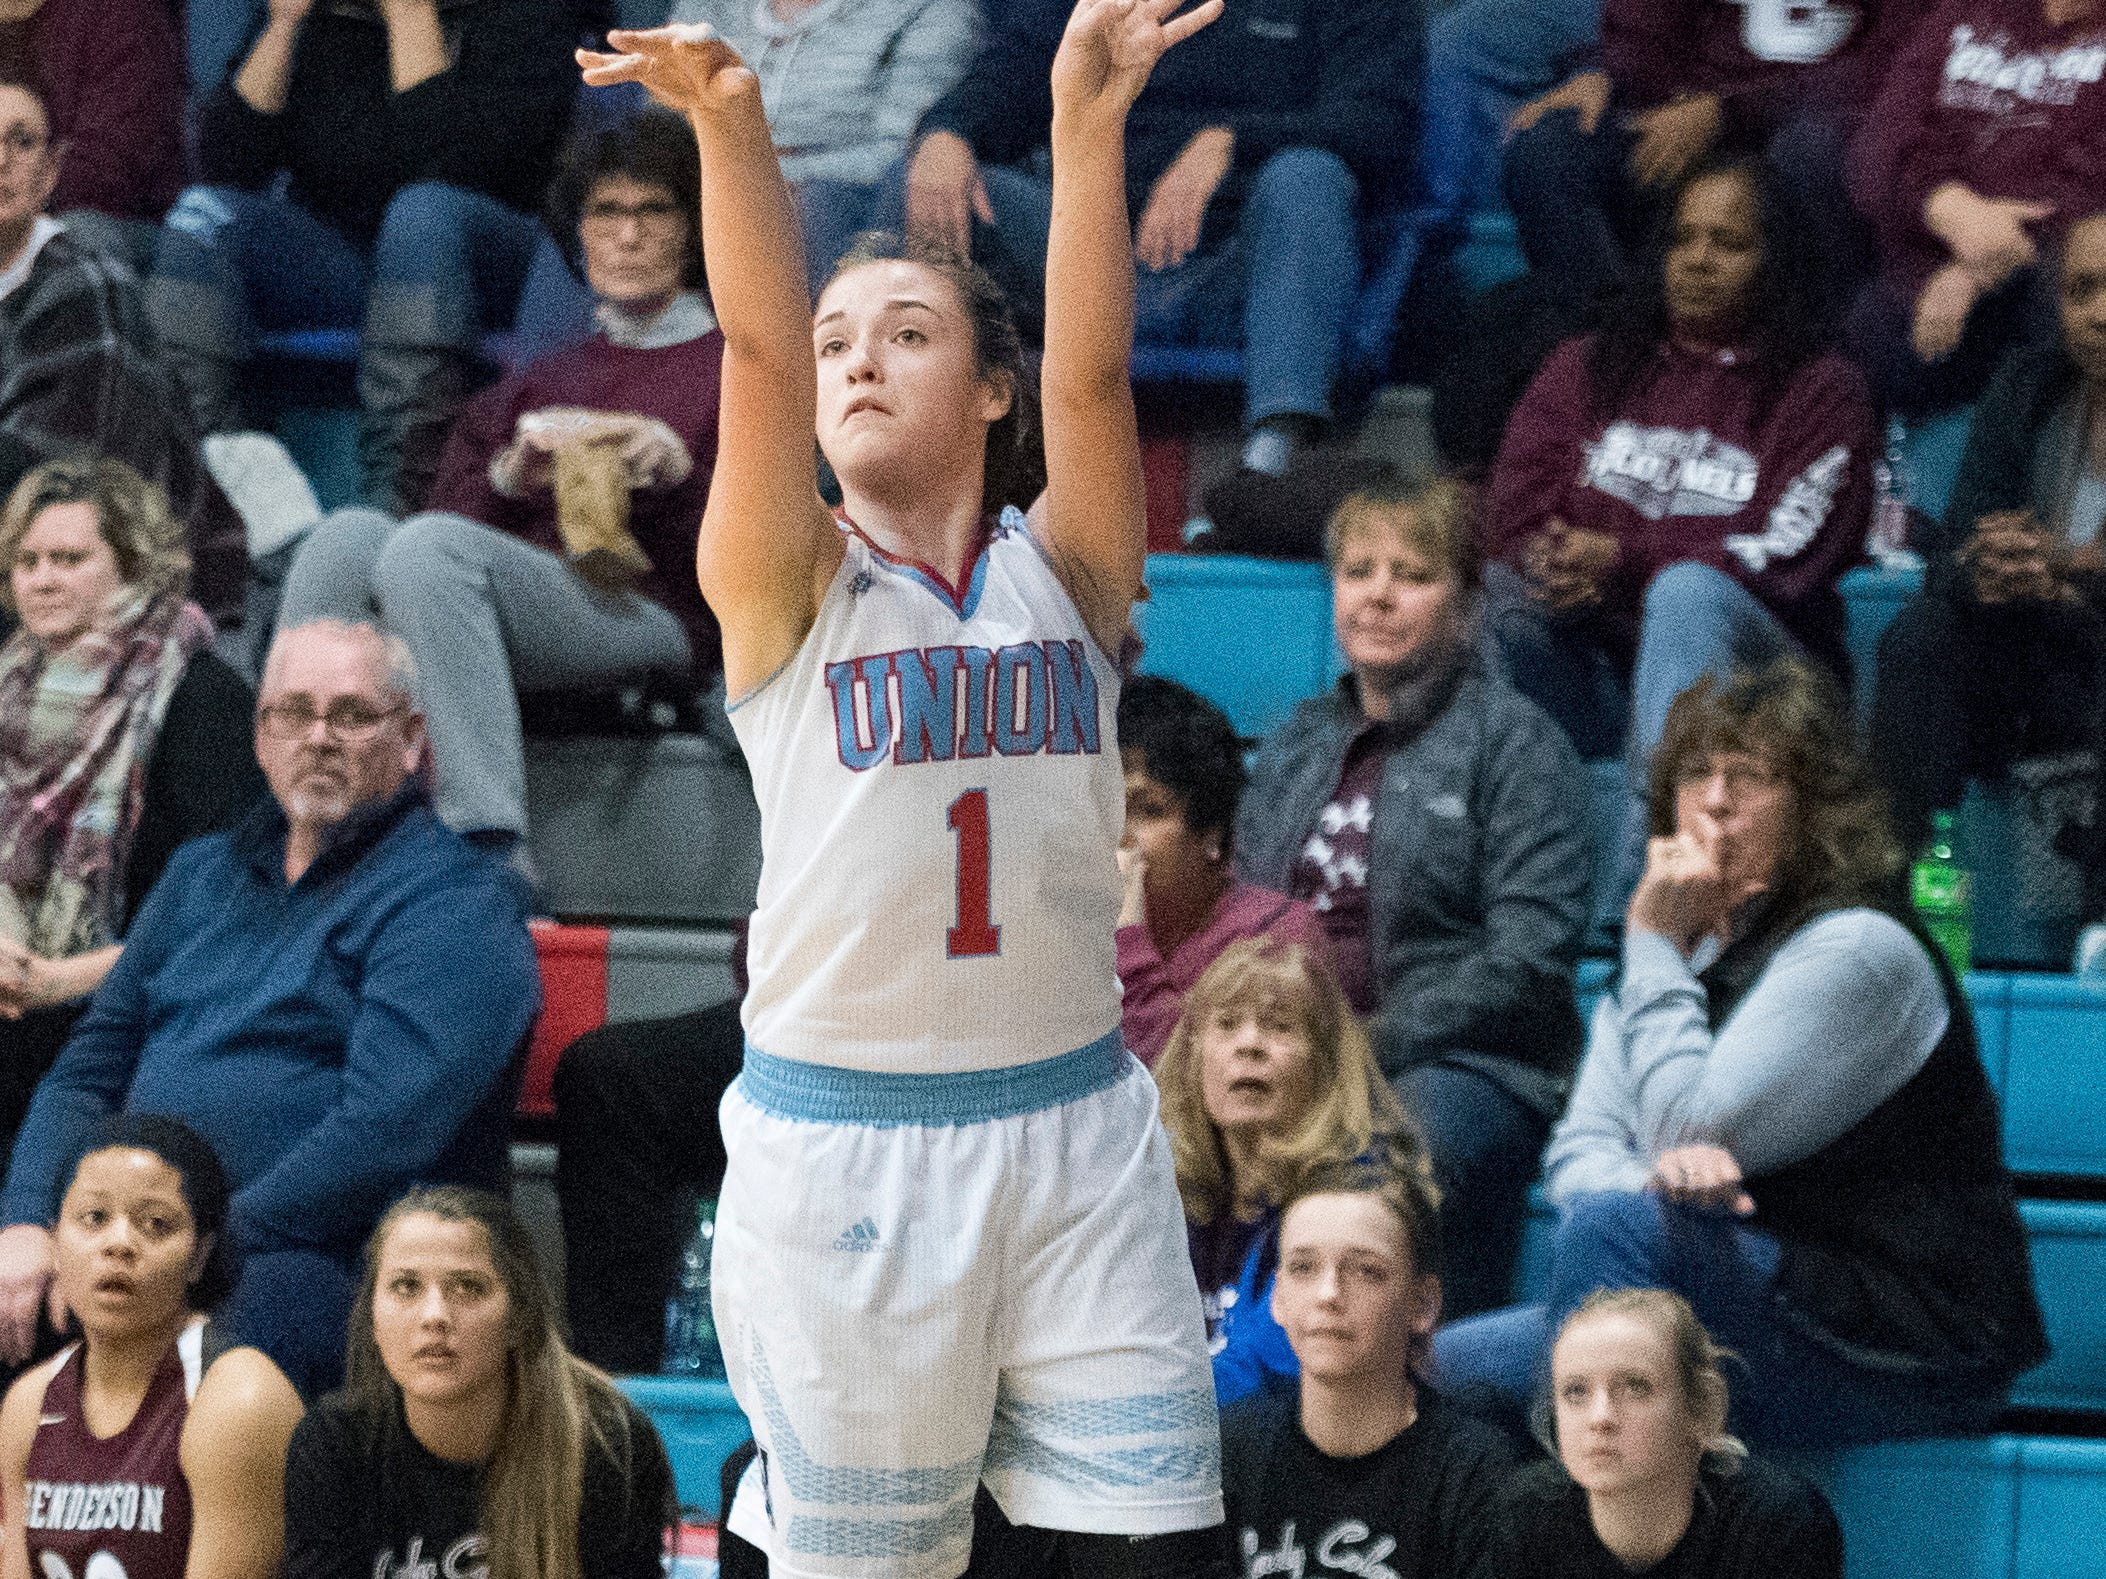 Union County's Emily Hibbs (1) takes a three-point shot during the Henderson County vs Union County game at Union County High School Monday, Jan. 14, 2019.